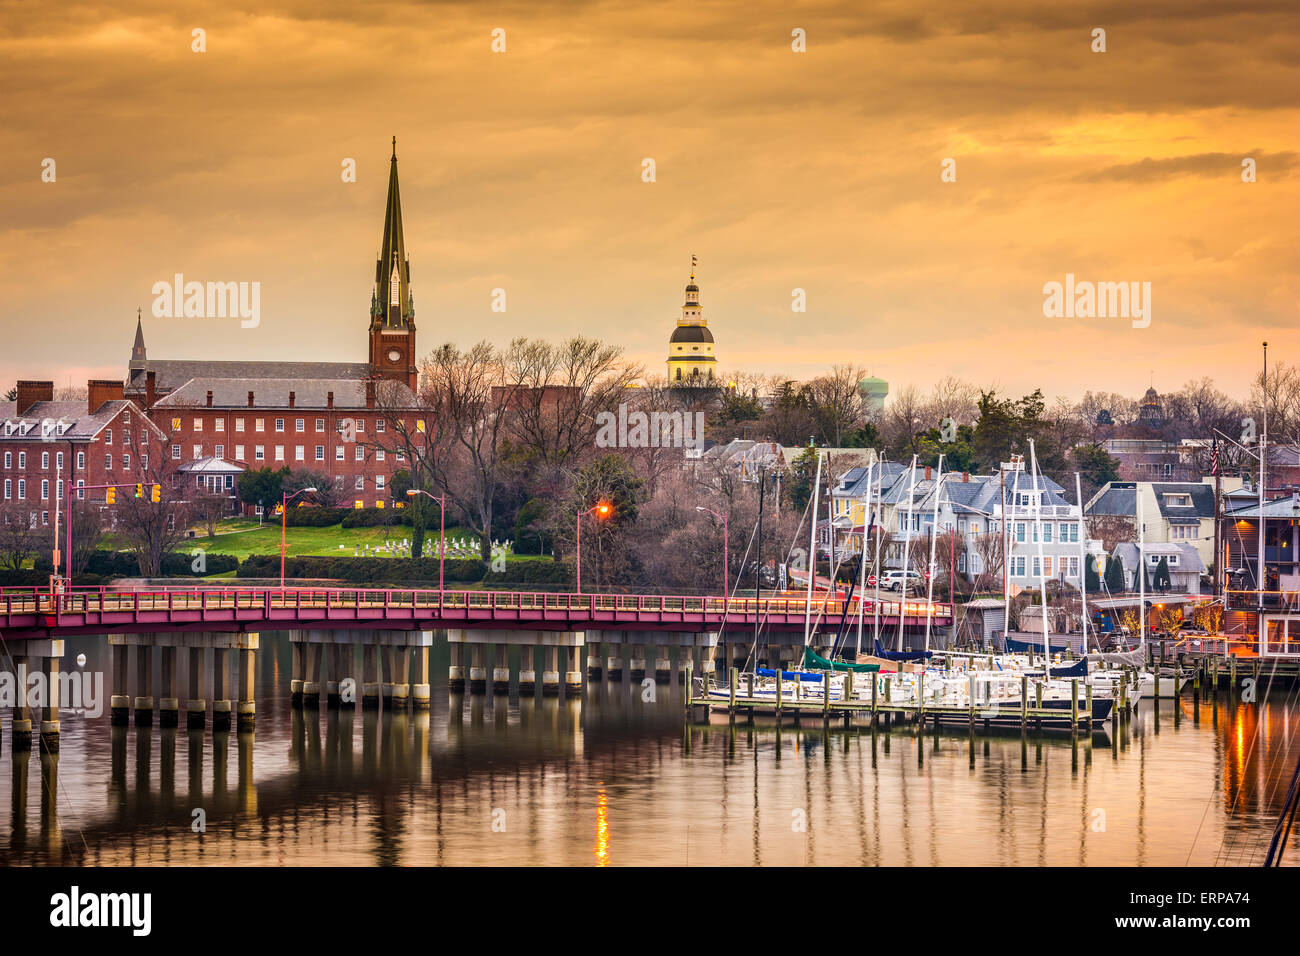 Annapolis, Maryland, USA State House and St. Mary's Church viewed over Annapolis Harbor and Compromise Bridge. - Stock Image